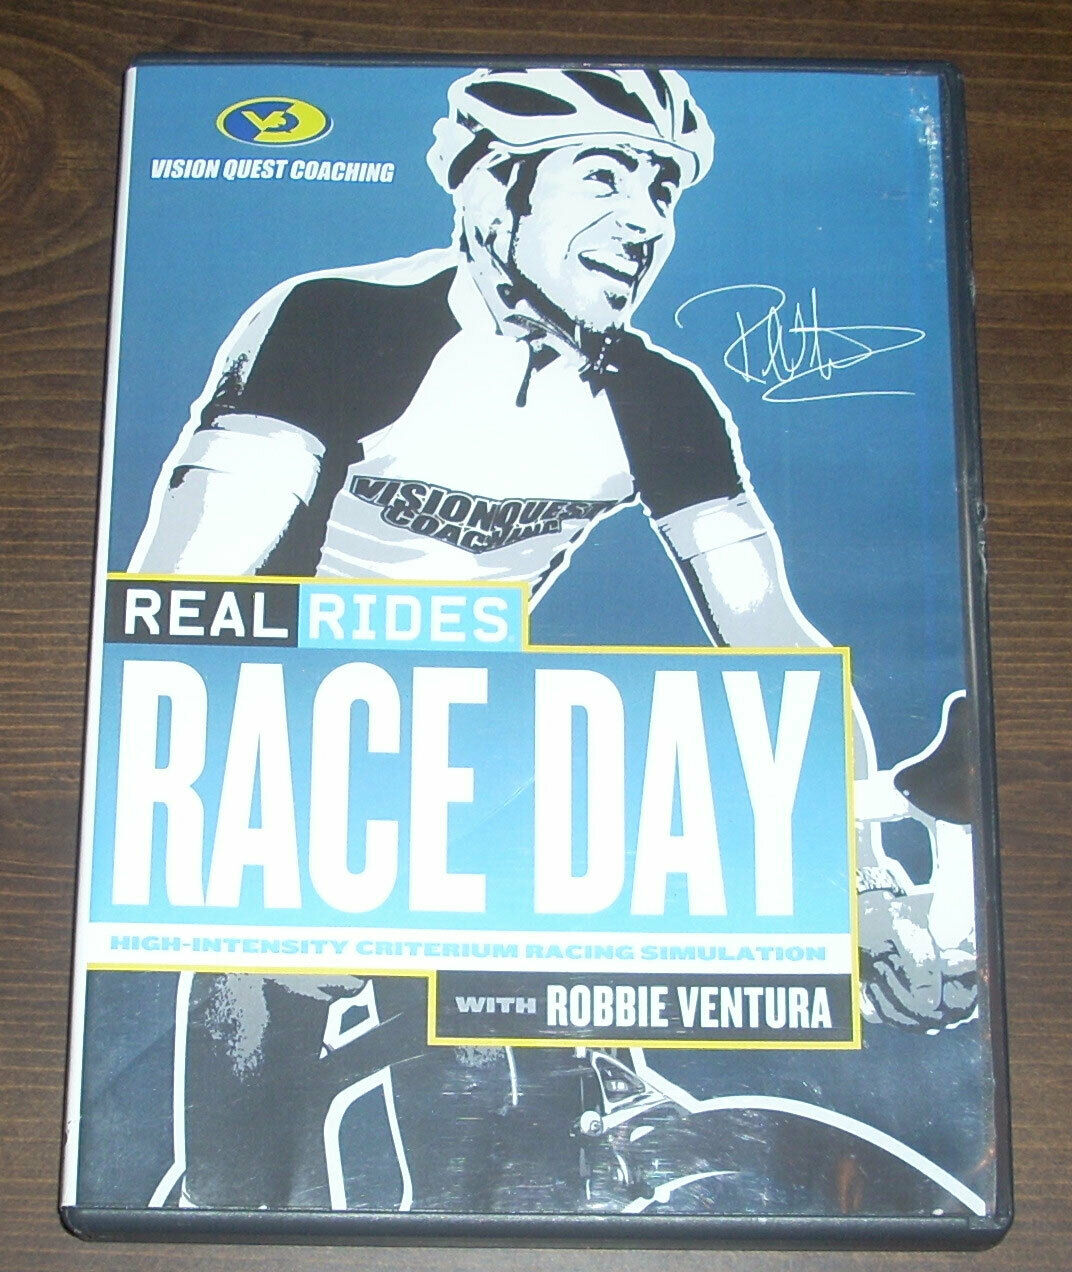 DVD Real Rides Race Day With Robbie Ventura Bicycle Training For Bike Racing  (Like New - 6.5 USD)